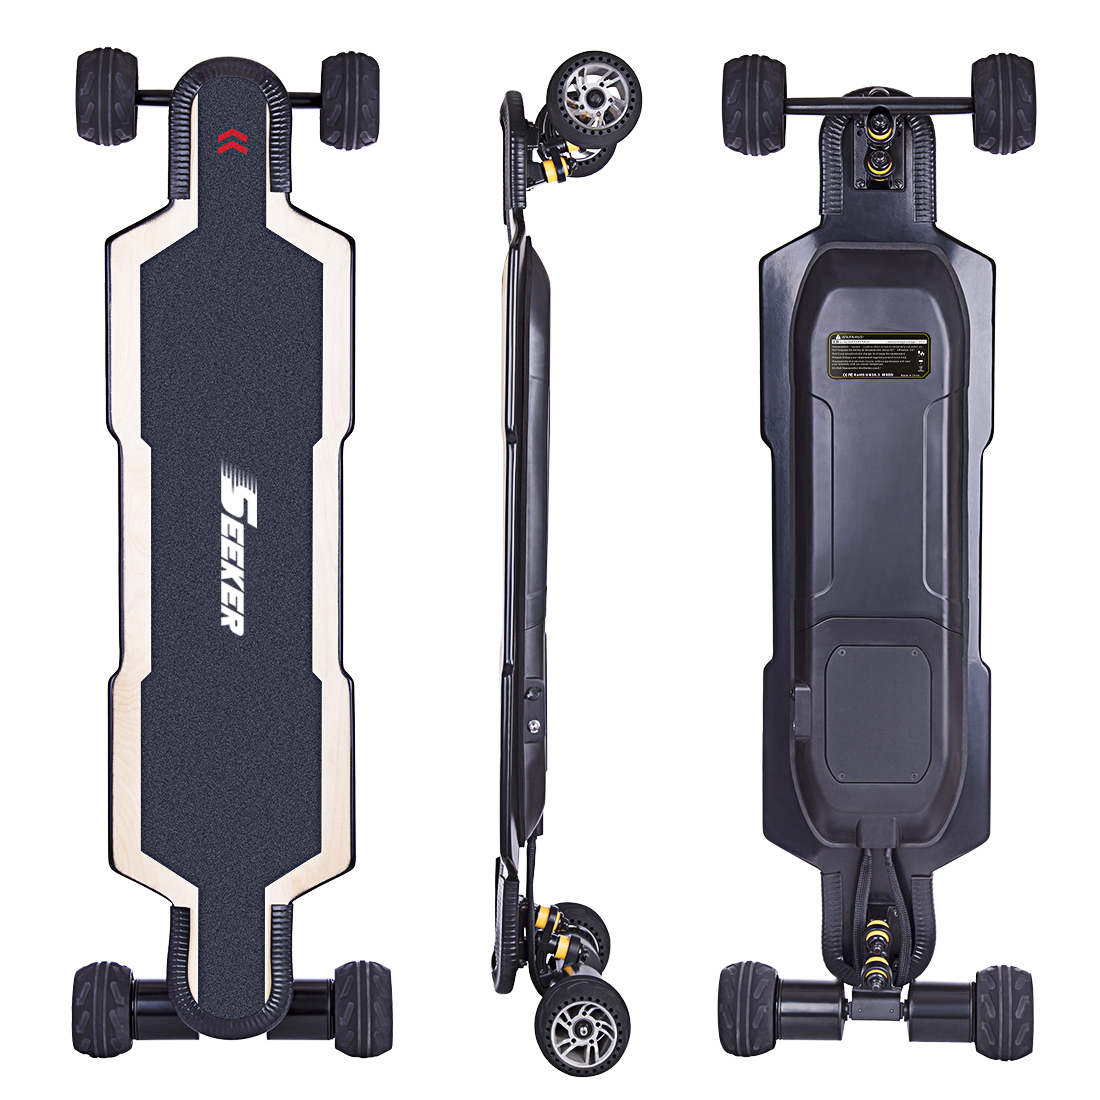 Hot SEEKERS BRT-02 4-Wheel Electric Skateboard For Children Kids School Play Game Education Outdoor Toy Birthday Gift - AU Plug